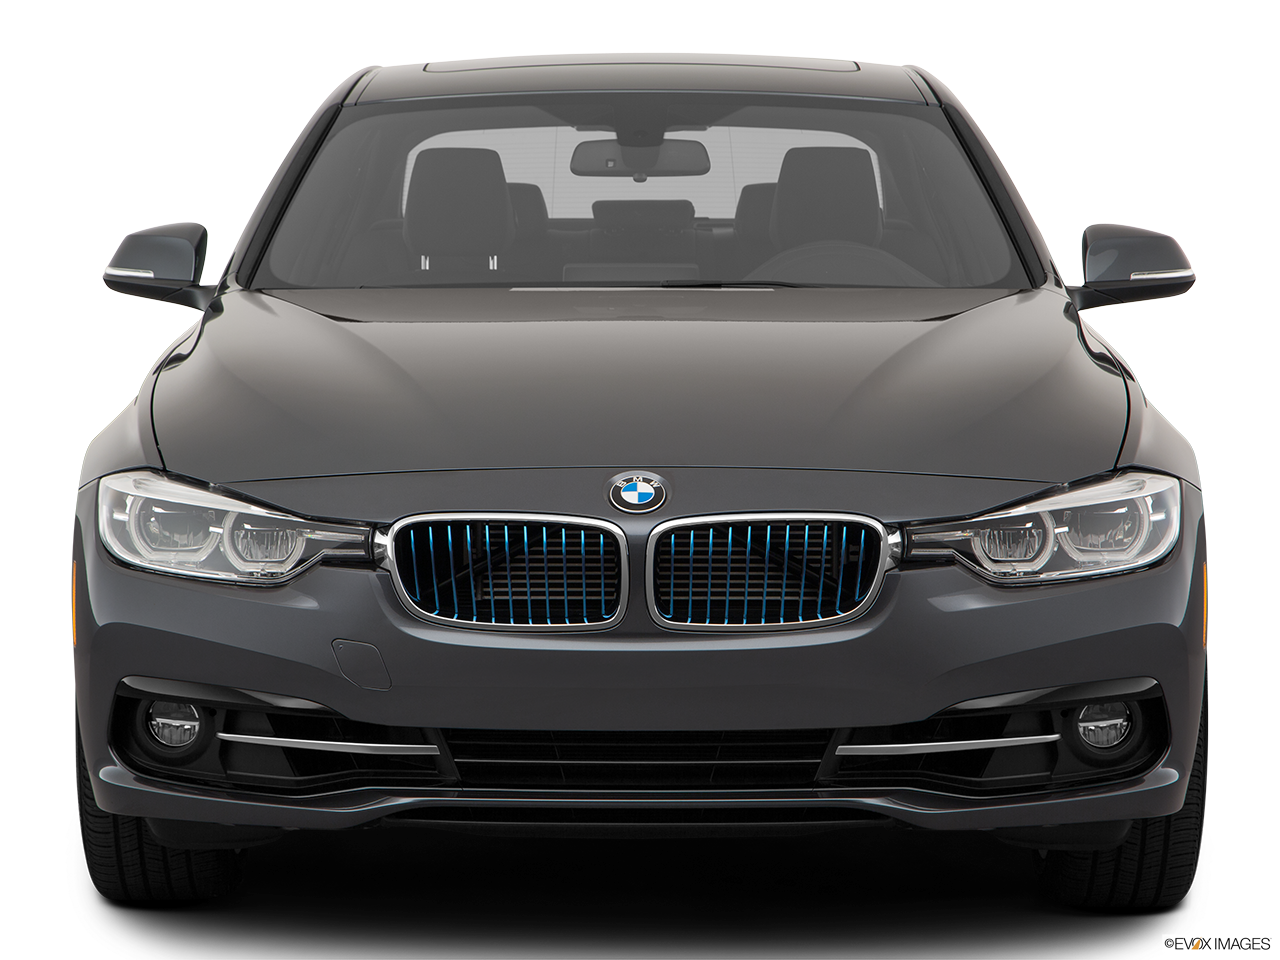 Front view of the BMW 330e